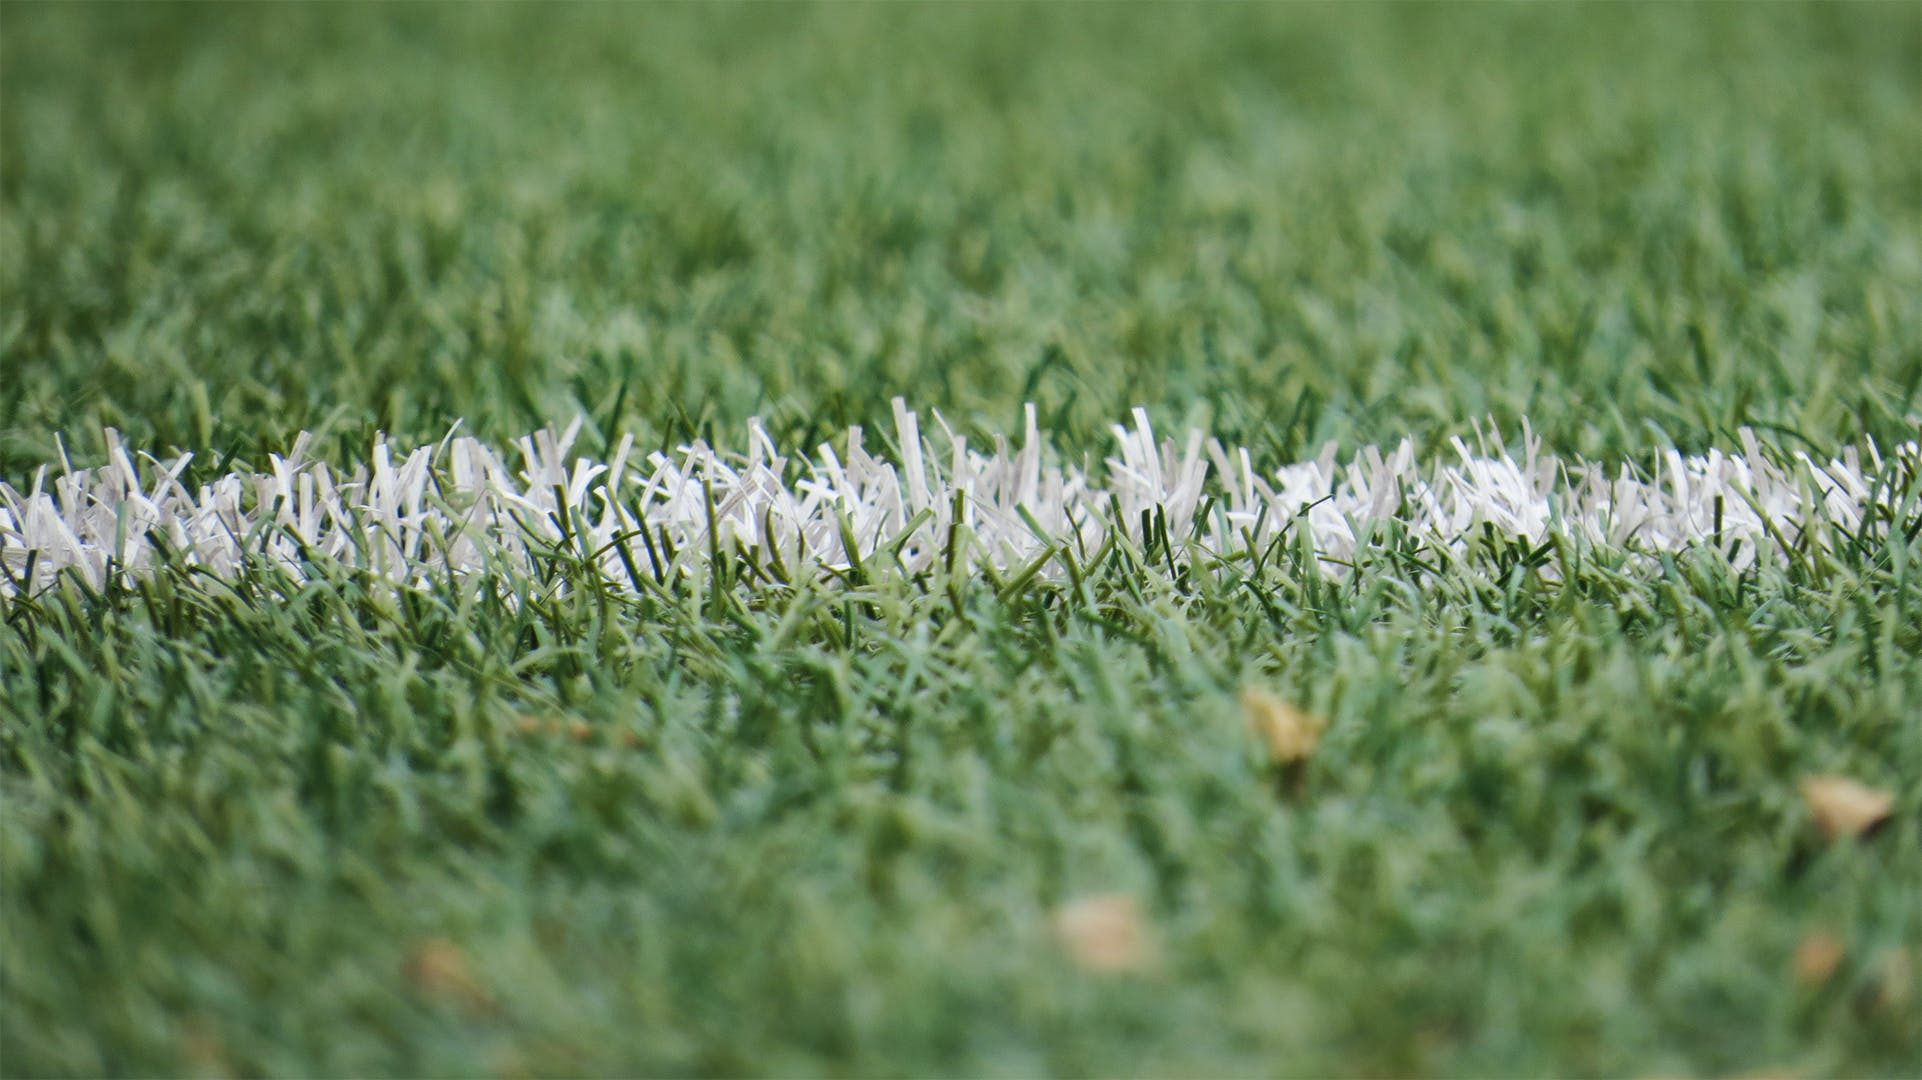 Free stock photo of field, grass, grassland, football